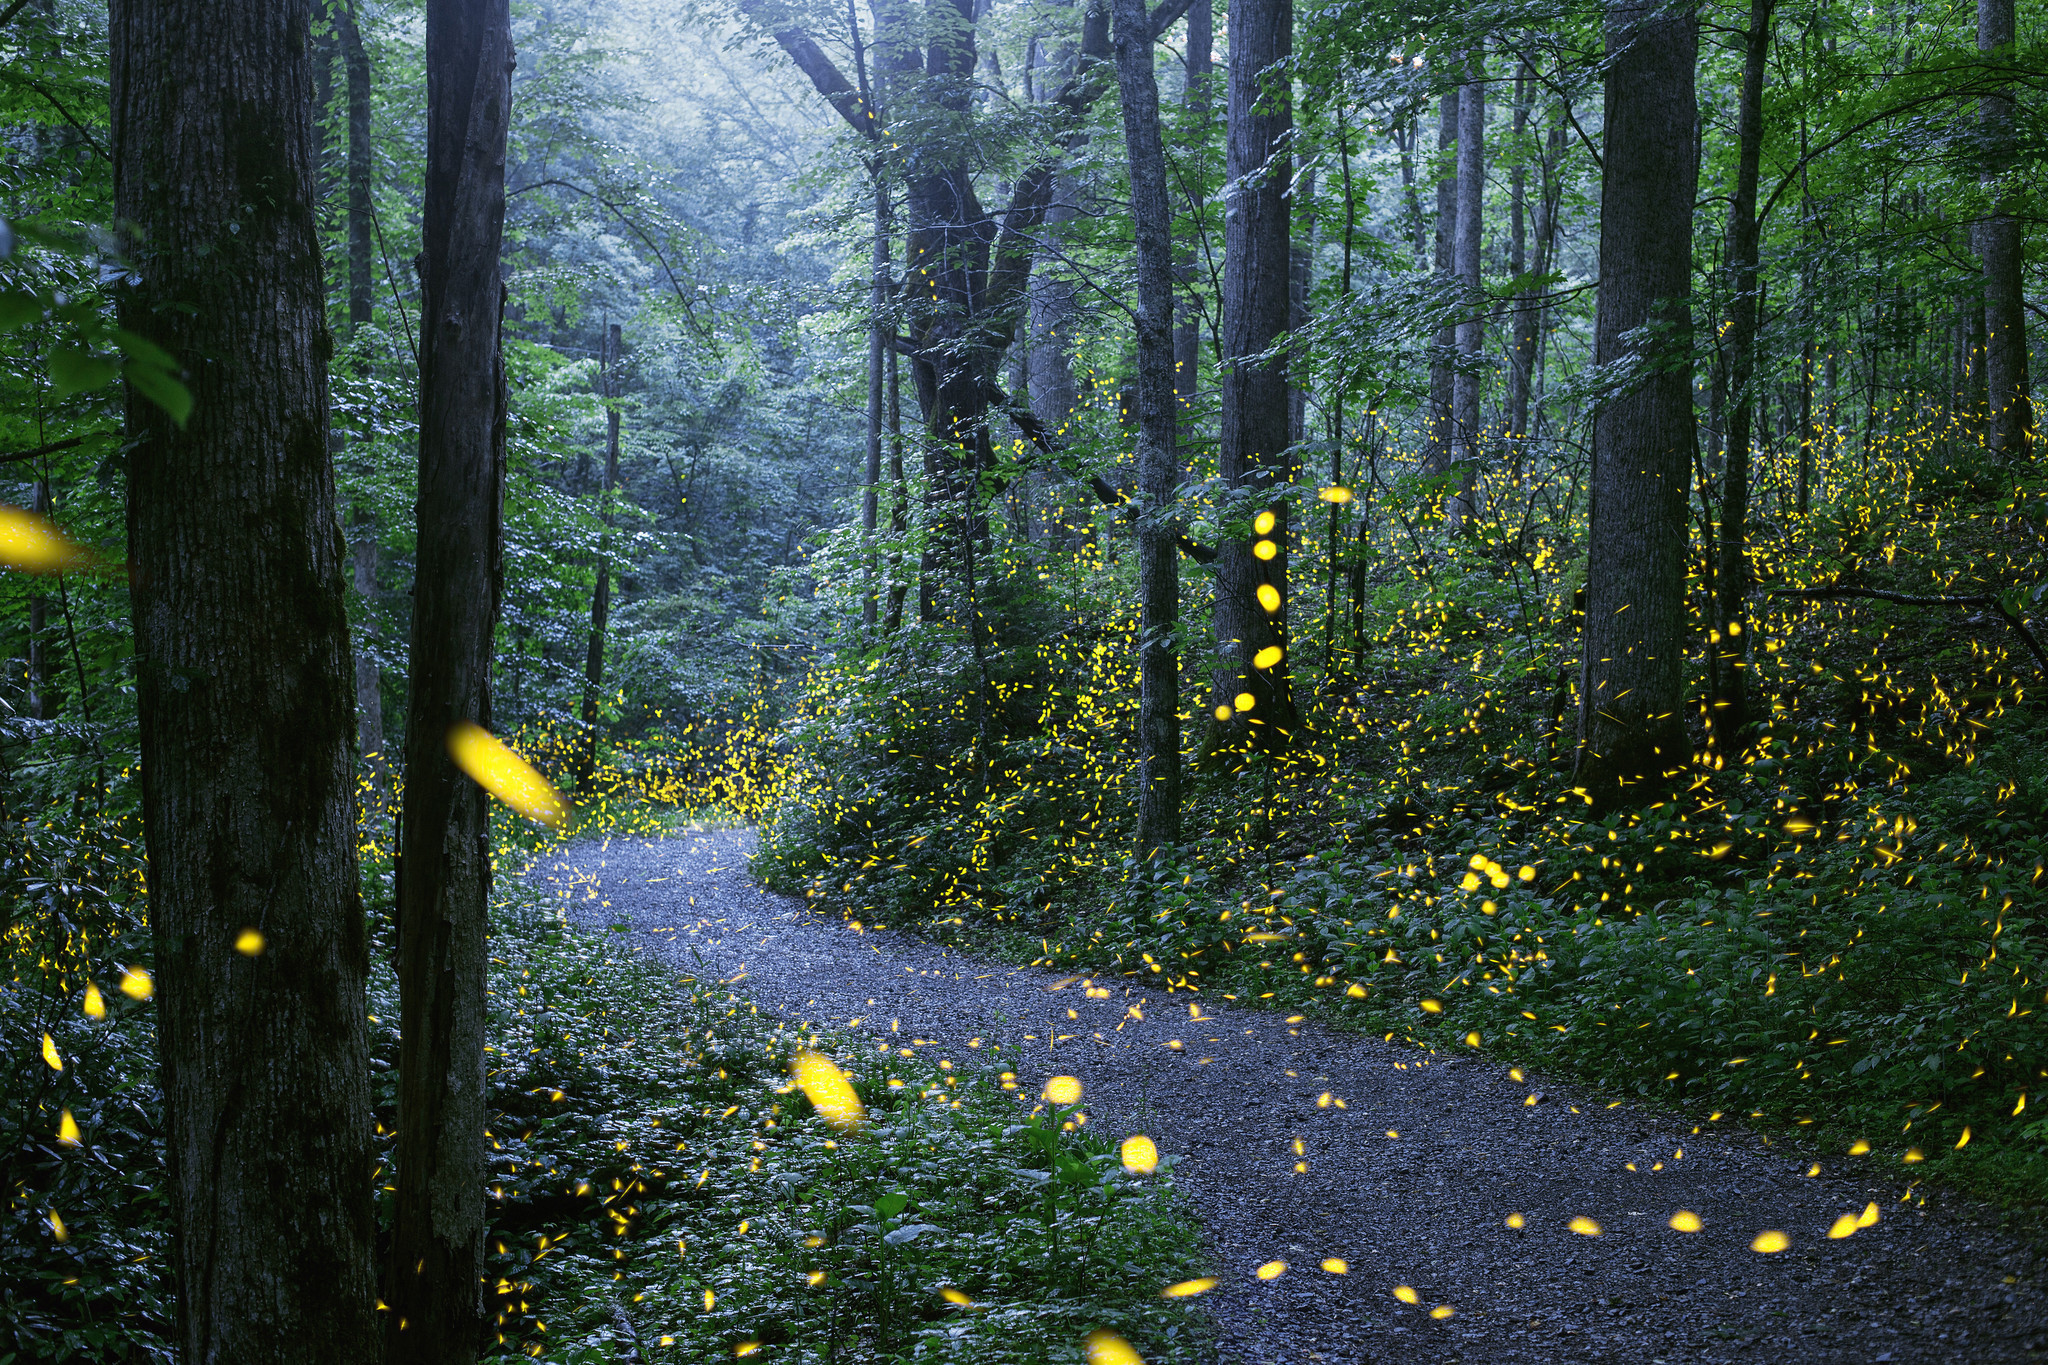 For 2 spectacular weeks mating fireflies light up Smoky